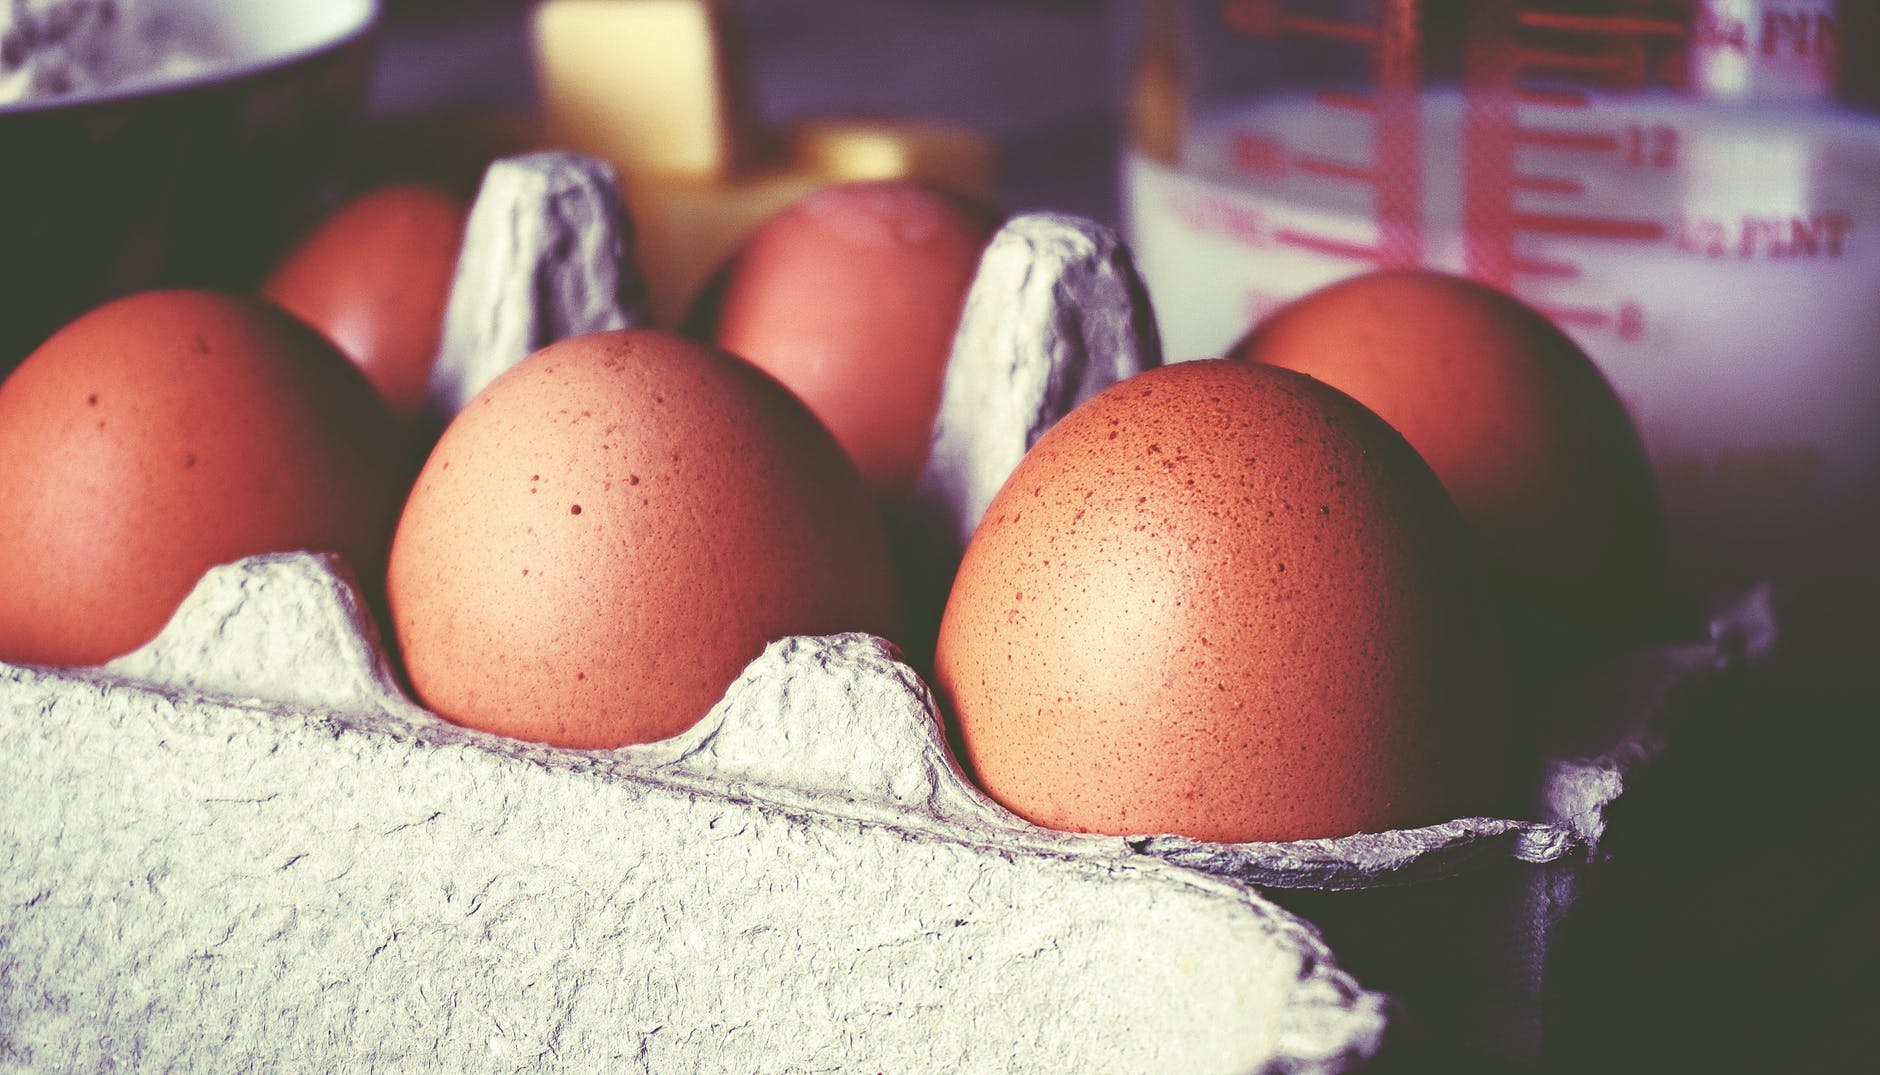 How To Start Eggs Supply Business To Shops and Markets in Nigeria